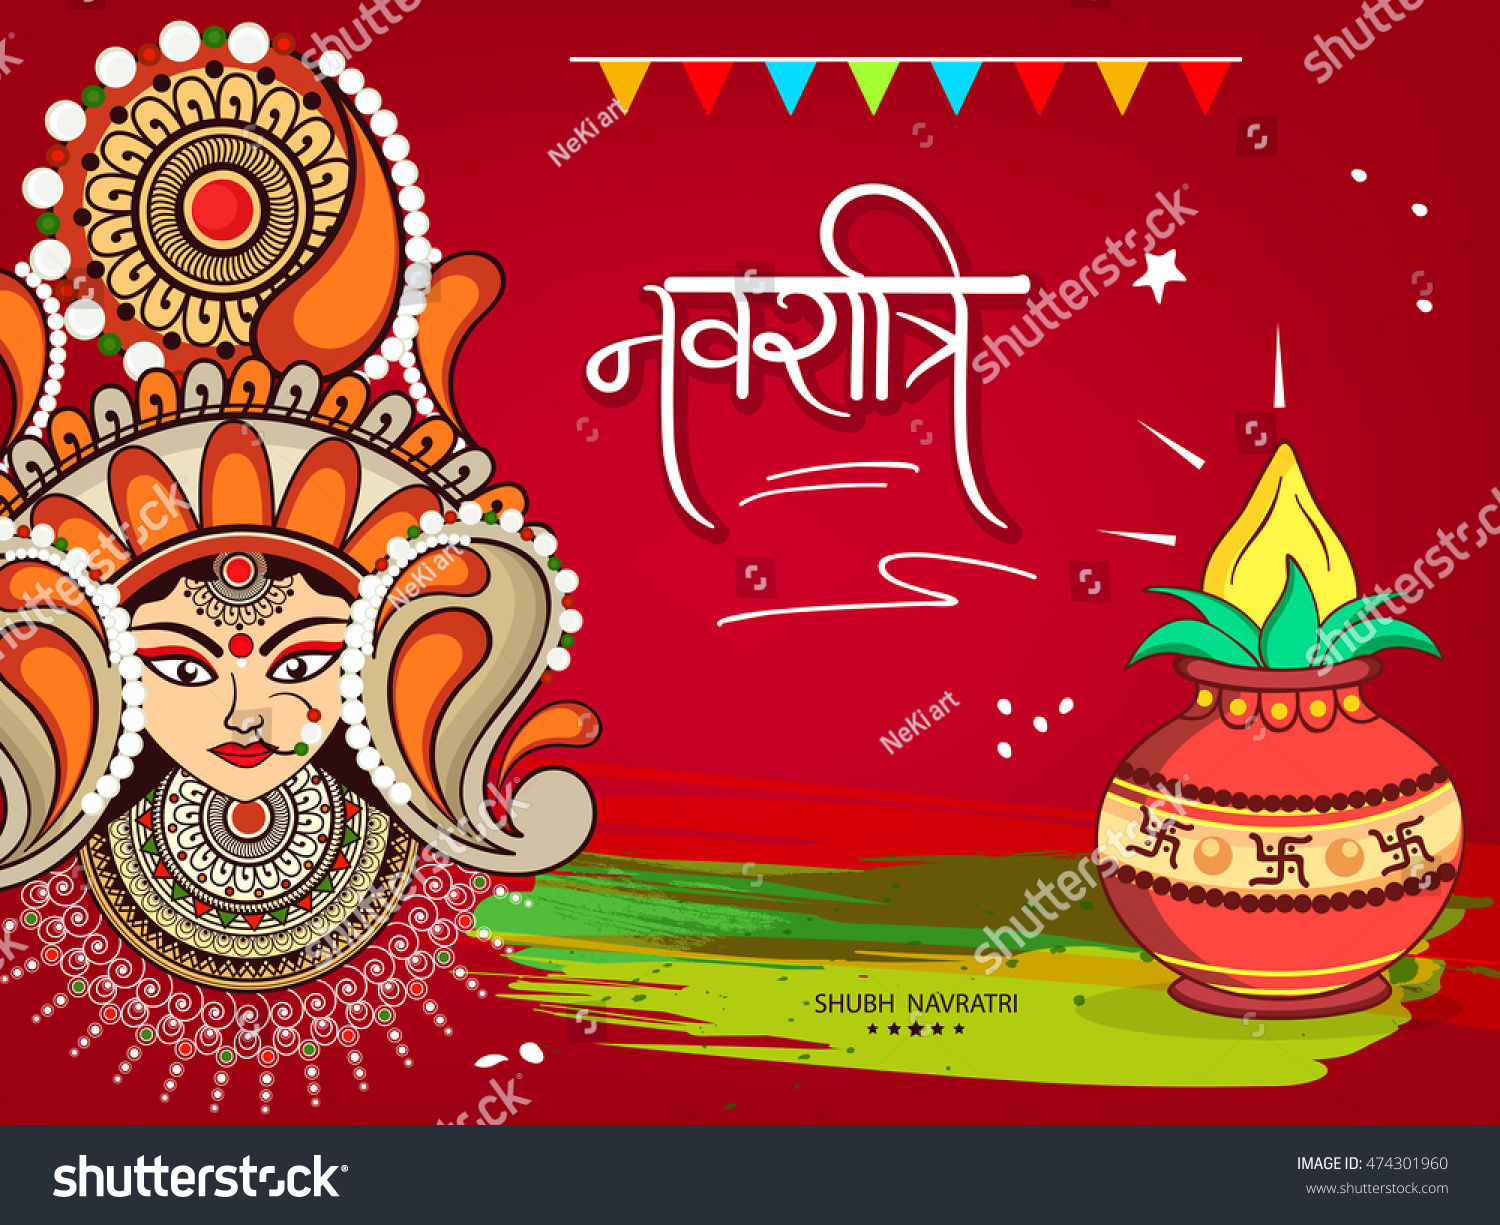 Beautiful greeting card wallpaper design hindu stock vector beautiful greeting card or wallpaper design for hindu festival shubh navratri or durga pooja with maa kristyandbryce Image collections